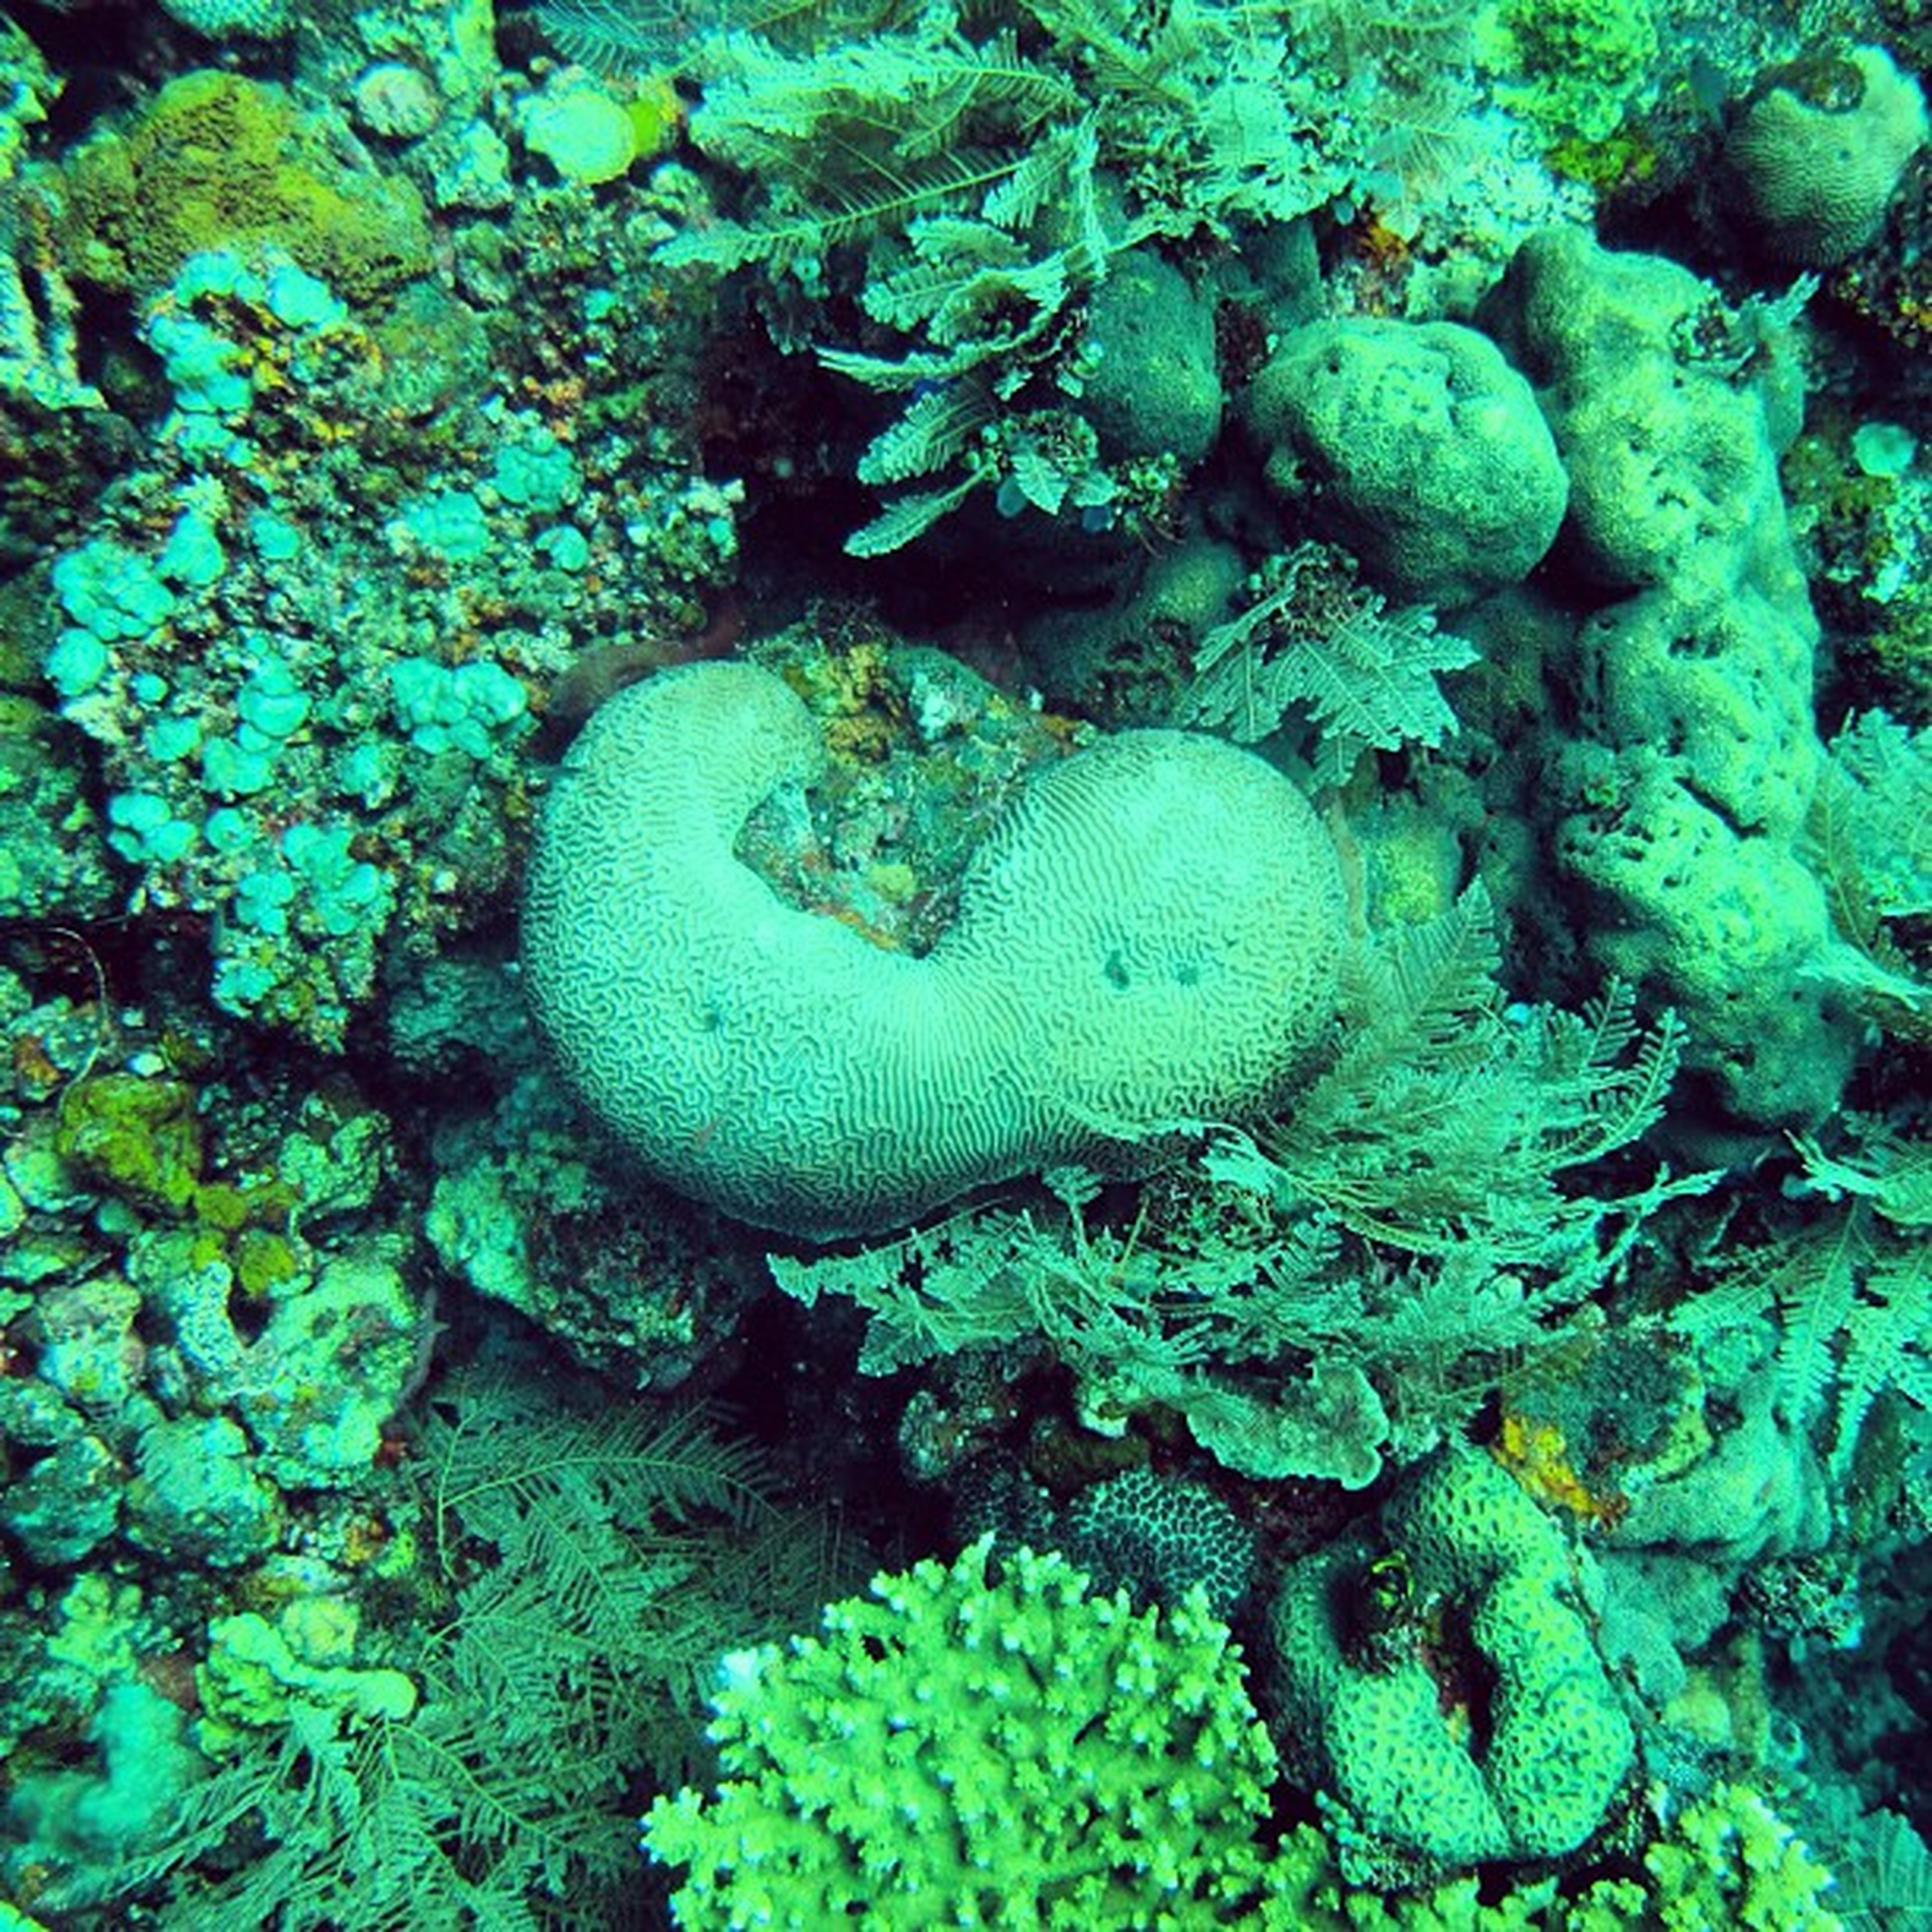 underwater, water, high angle view, green color, nature, sea life, fish, animal themes, freshness, close-up, beauty in nature, undersea, coral, rock - object, wildlife, no people, swimming, animals in the wild, vegetable, food and drink